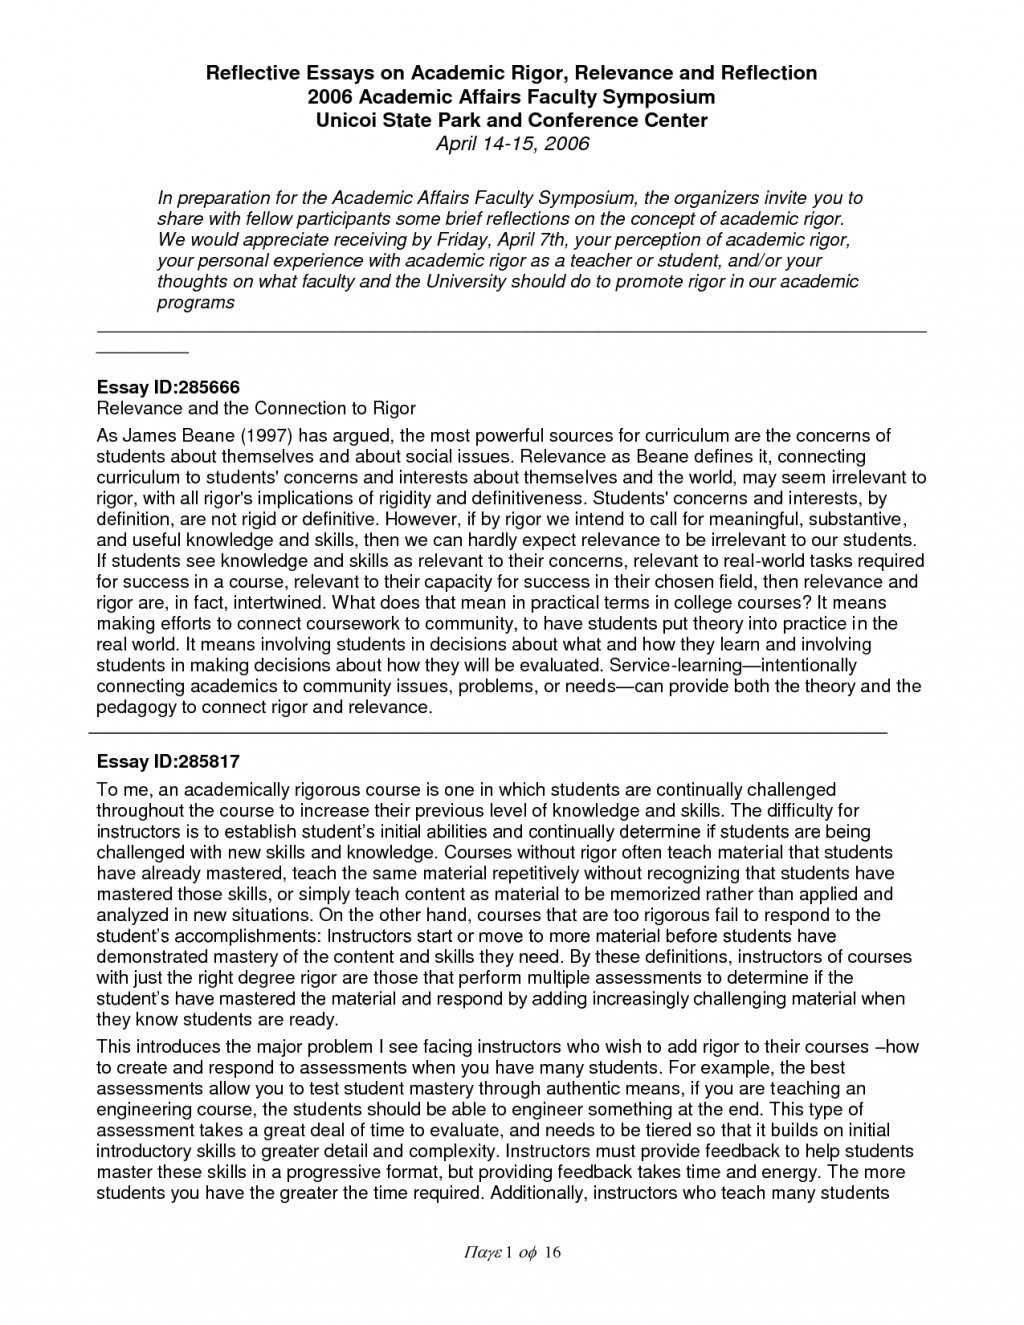 007 Descriptive Essay About Love Ixora Philippinensis Example Of Family Essays For High School Students Pics Admi Unique Examples Personal Statement Sample 5 Paragraph Argumentative Tagalog Large